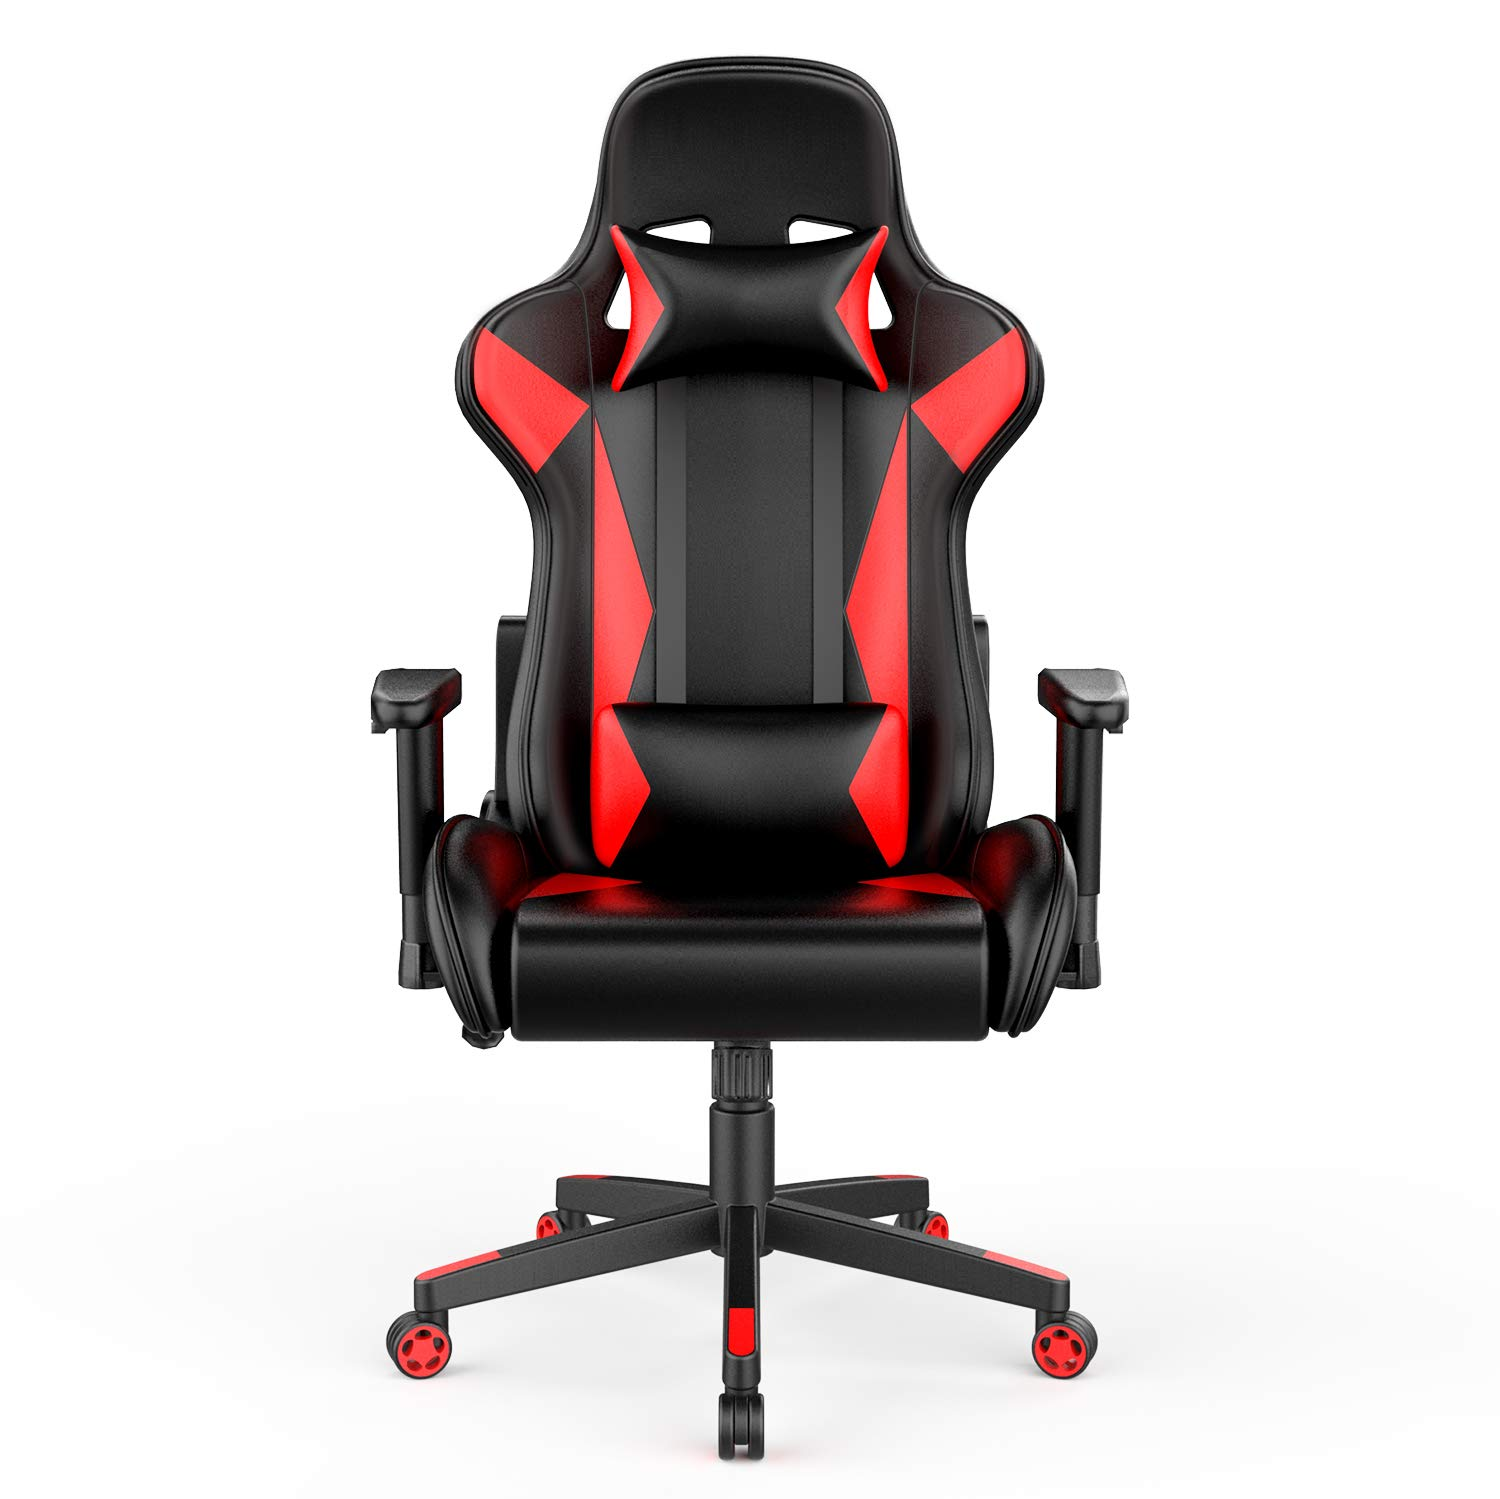 AmazonBasics BIFMA Certified Gaming Racing Style Office Chair – with Removable Headrest and High Back Cushion – Red, BIFMA Certified